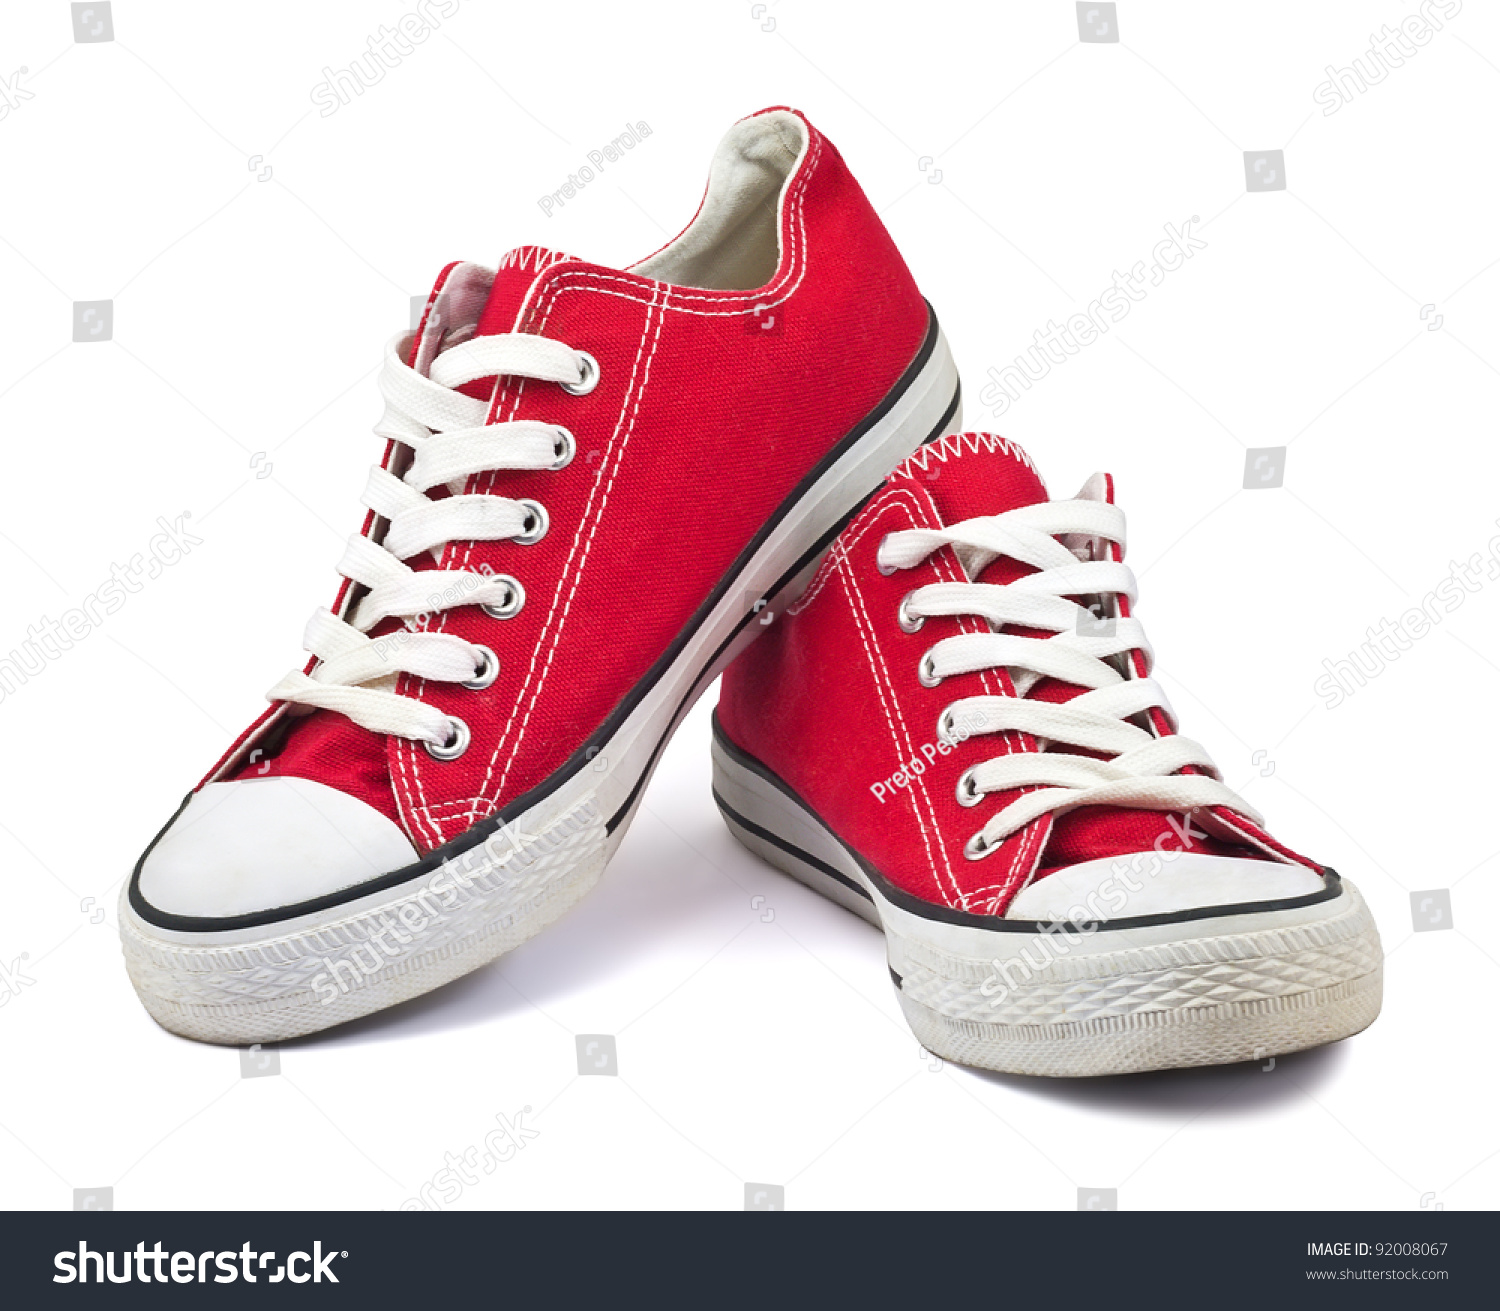 vintage red shoes on white background #92008067